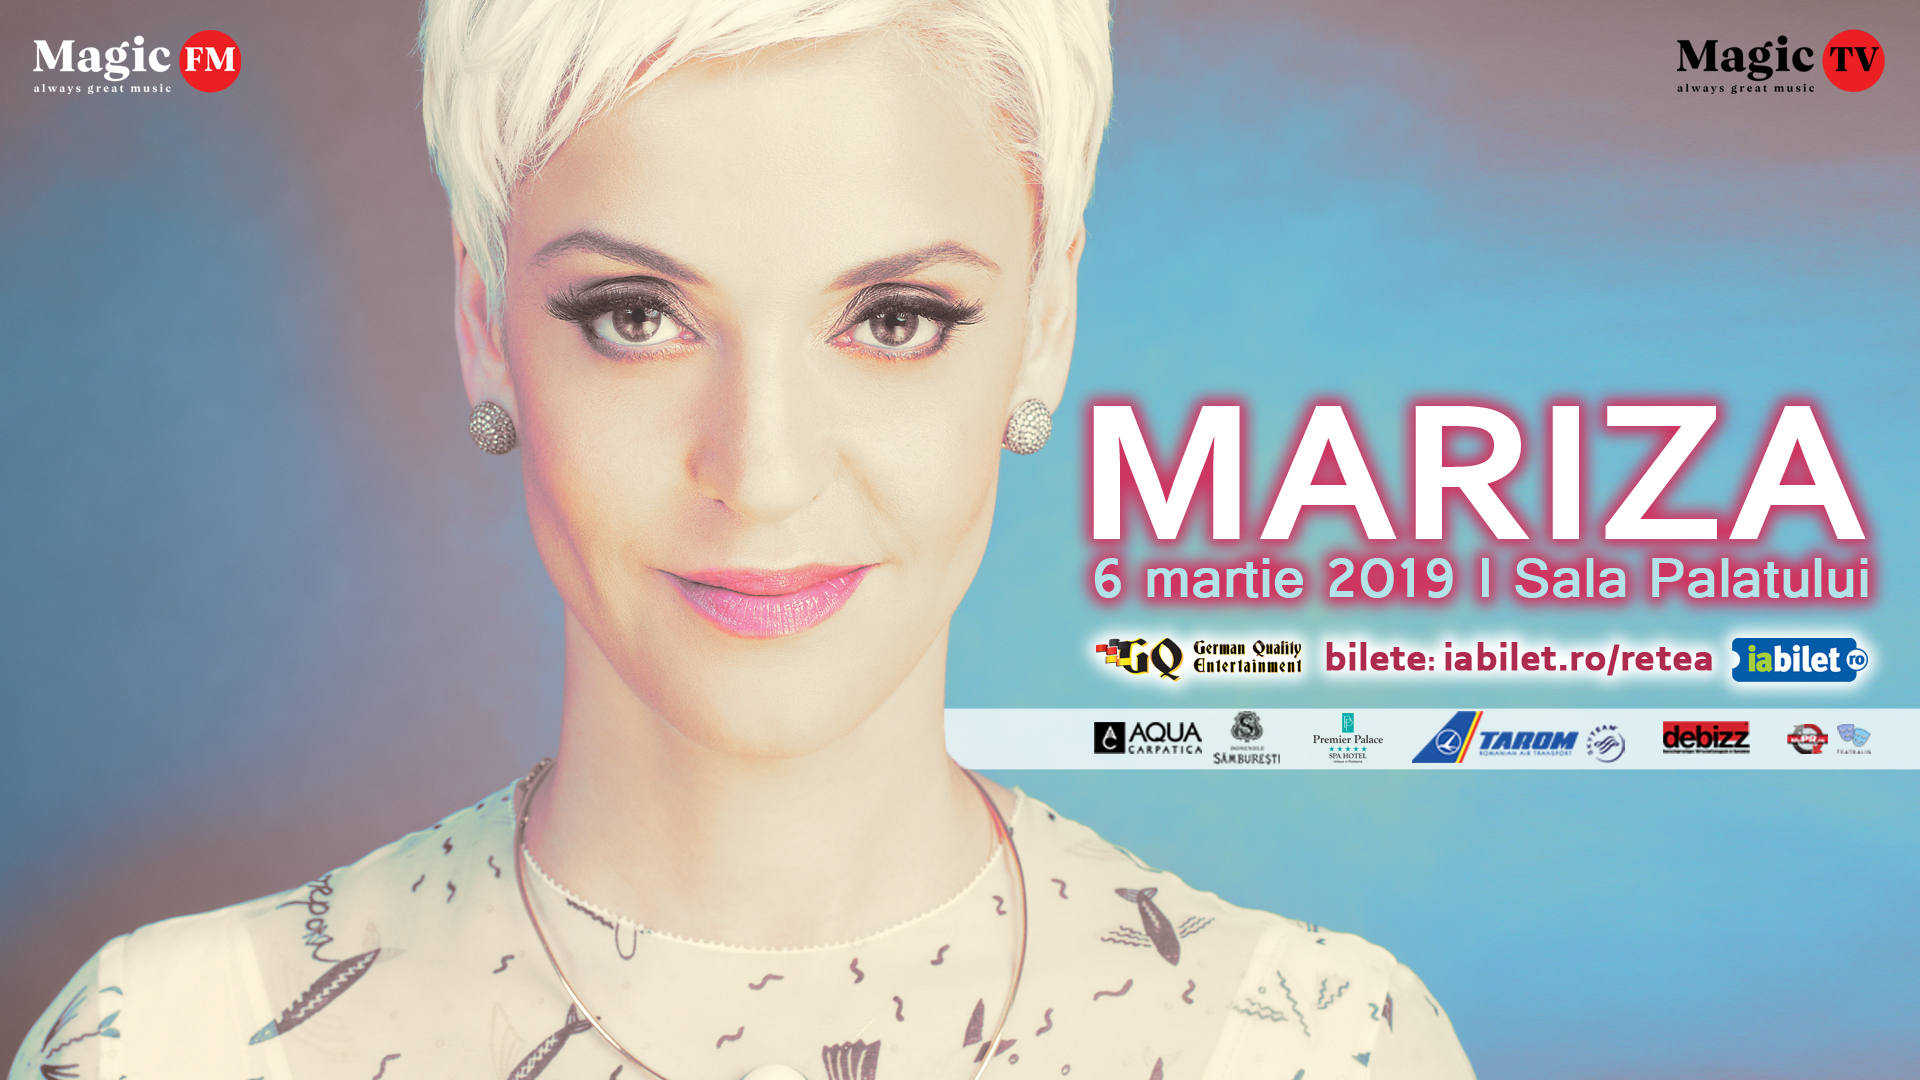 Mariza enza pictures free download